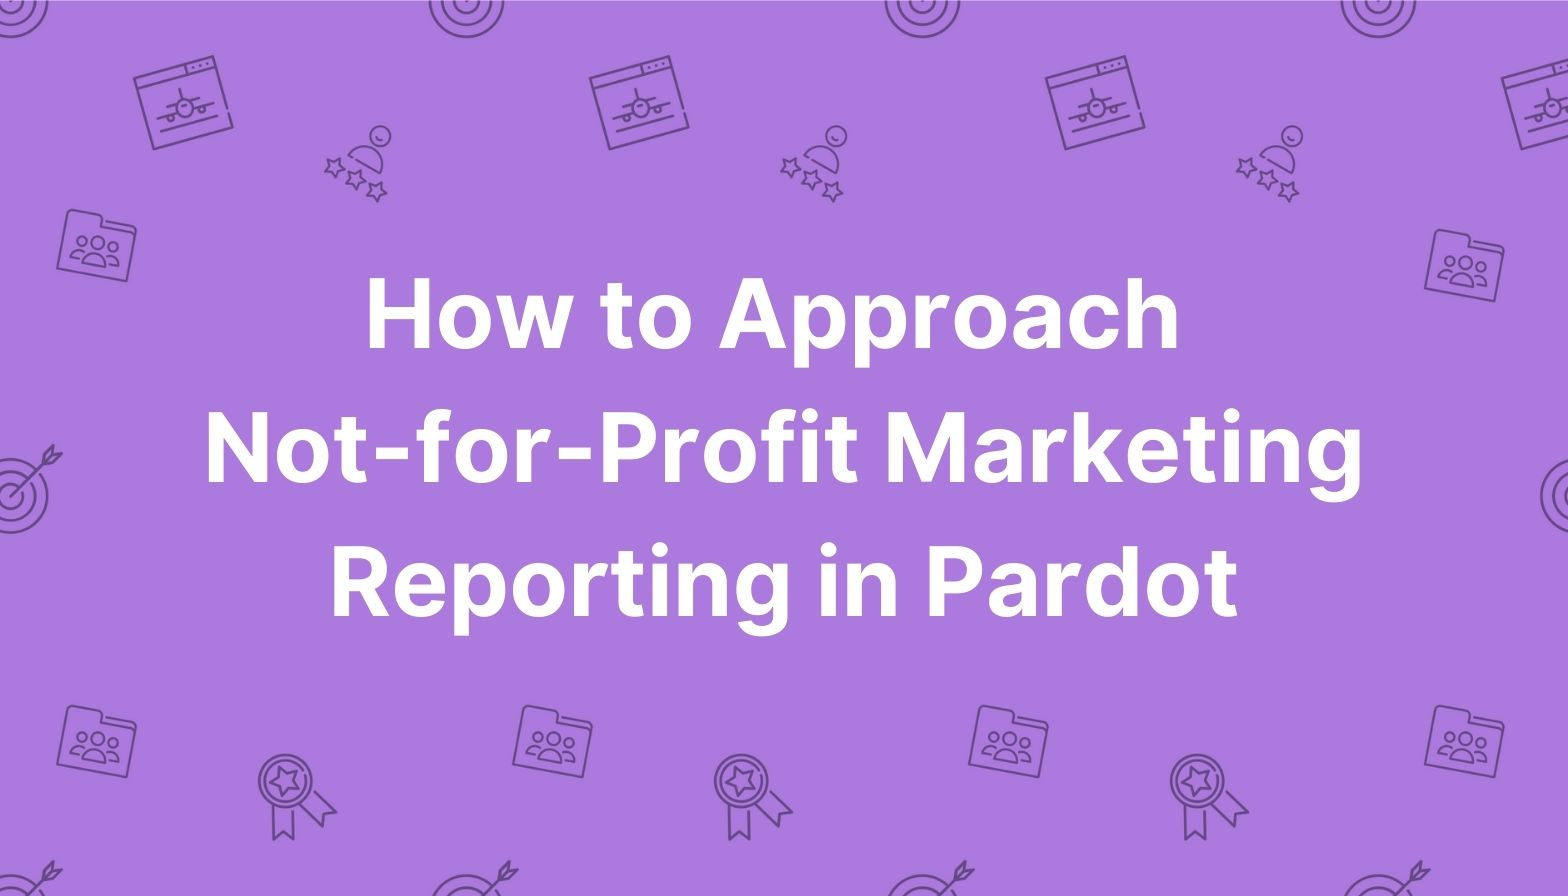 Feature image: How to approach not-for-profit marketing reporting in Pardot